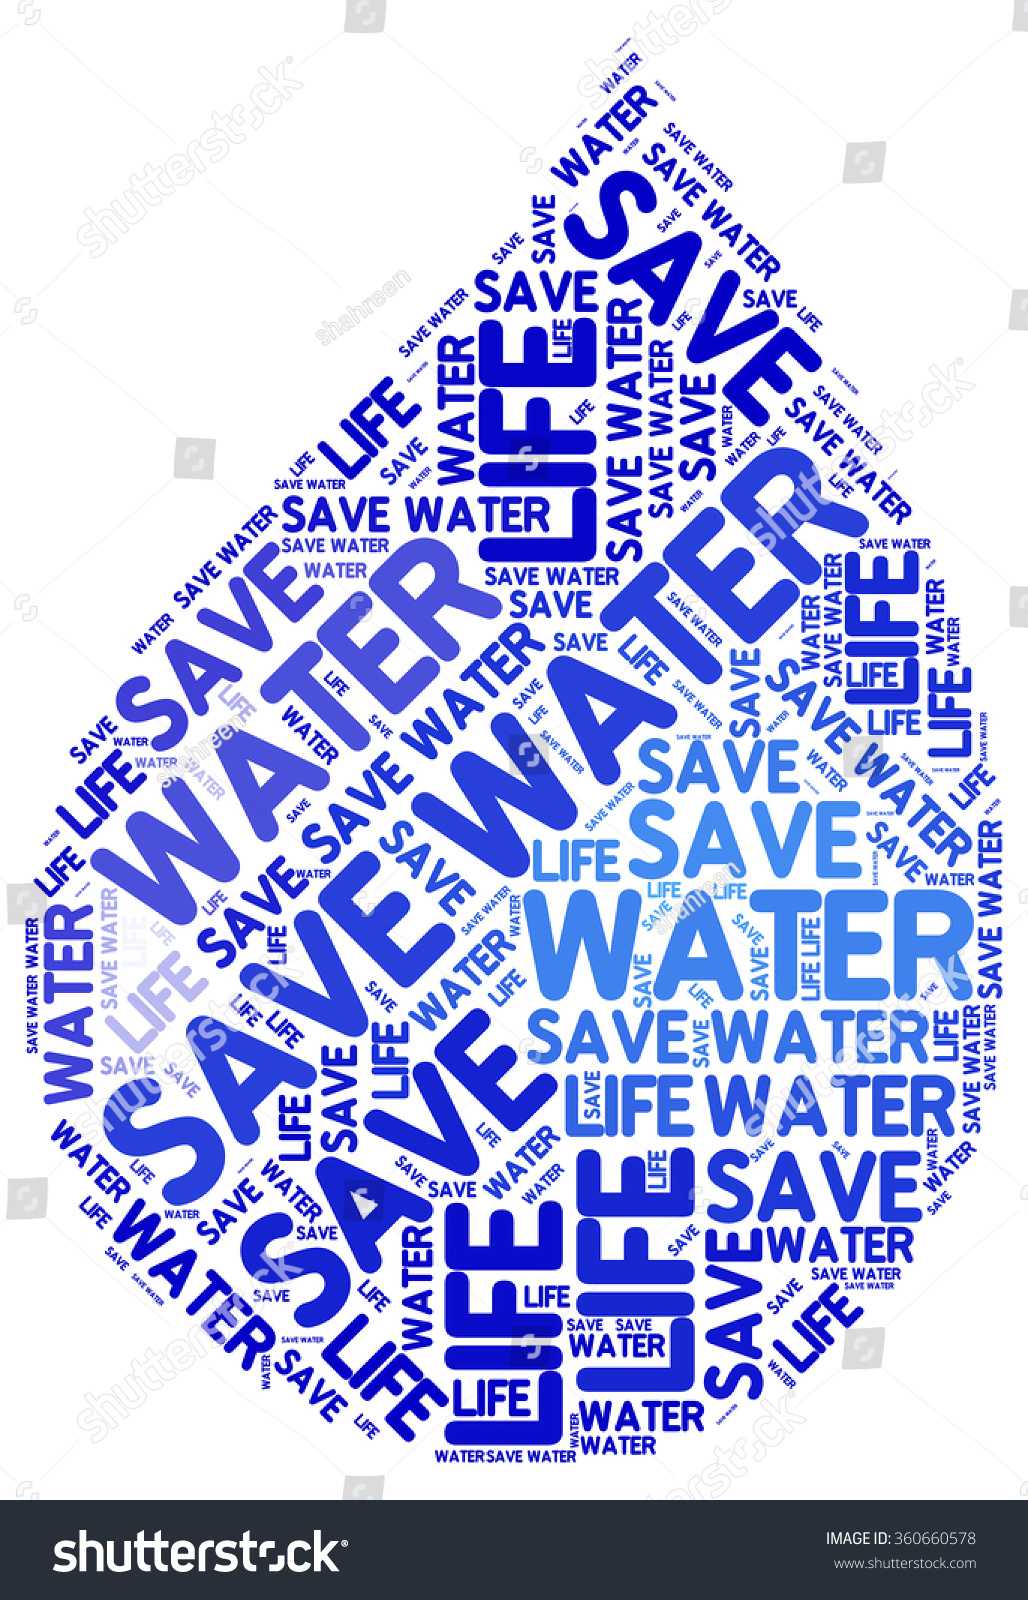 save water save earth in 100 words Save water essay 1 (100 words) save water happens to  save water essay 2 ( 150 words)  everything that we see in this earth requires some kind of water.